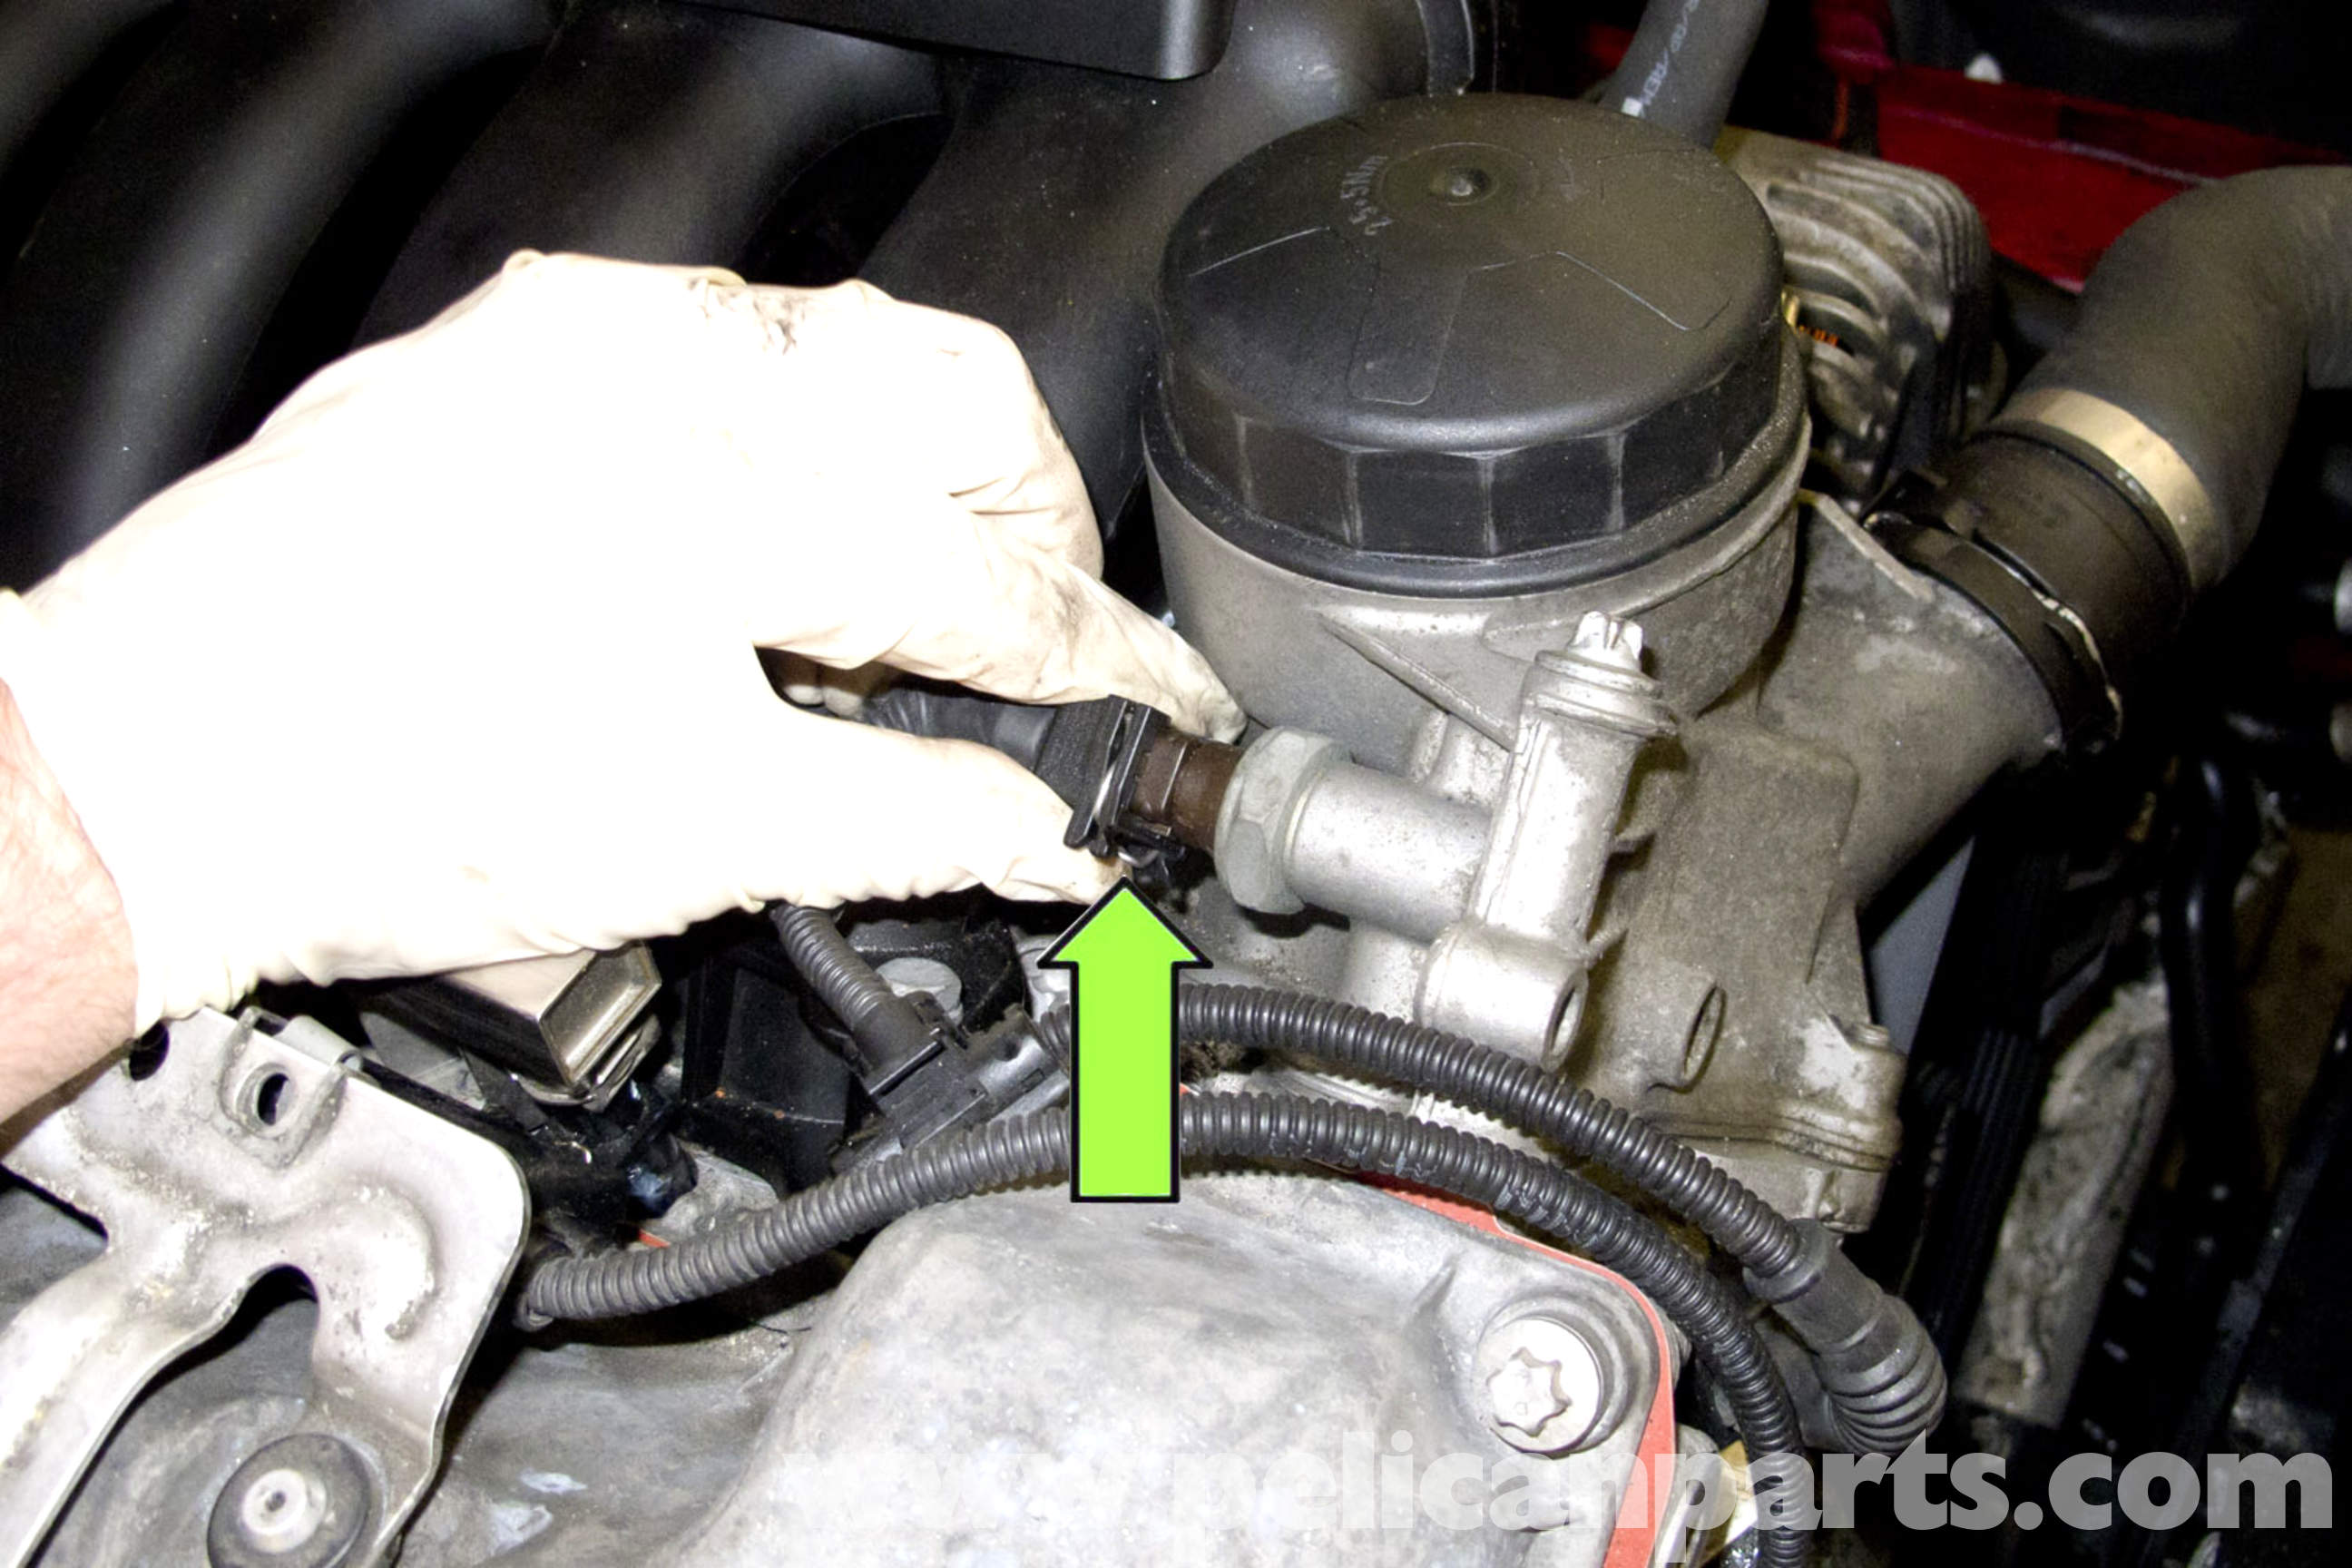 1969 Chevy Camaro further 2014 Ford Escape Oil Filter Location further Thermal Motor Protection Circuit For DC as well 2011 Ford Focus S Sedan moreover 2011 Ford Fusion Sport Engine. on 2006 ford fusion engine light on